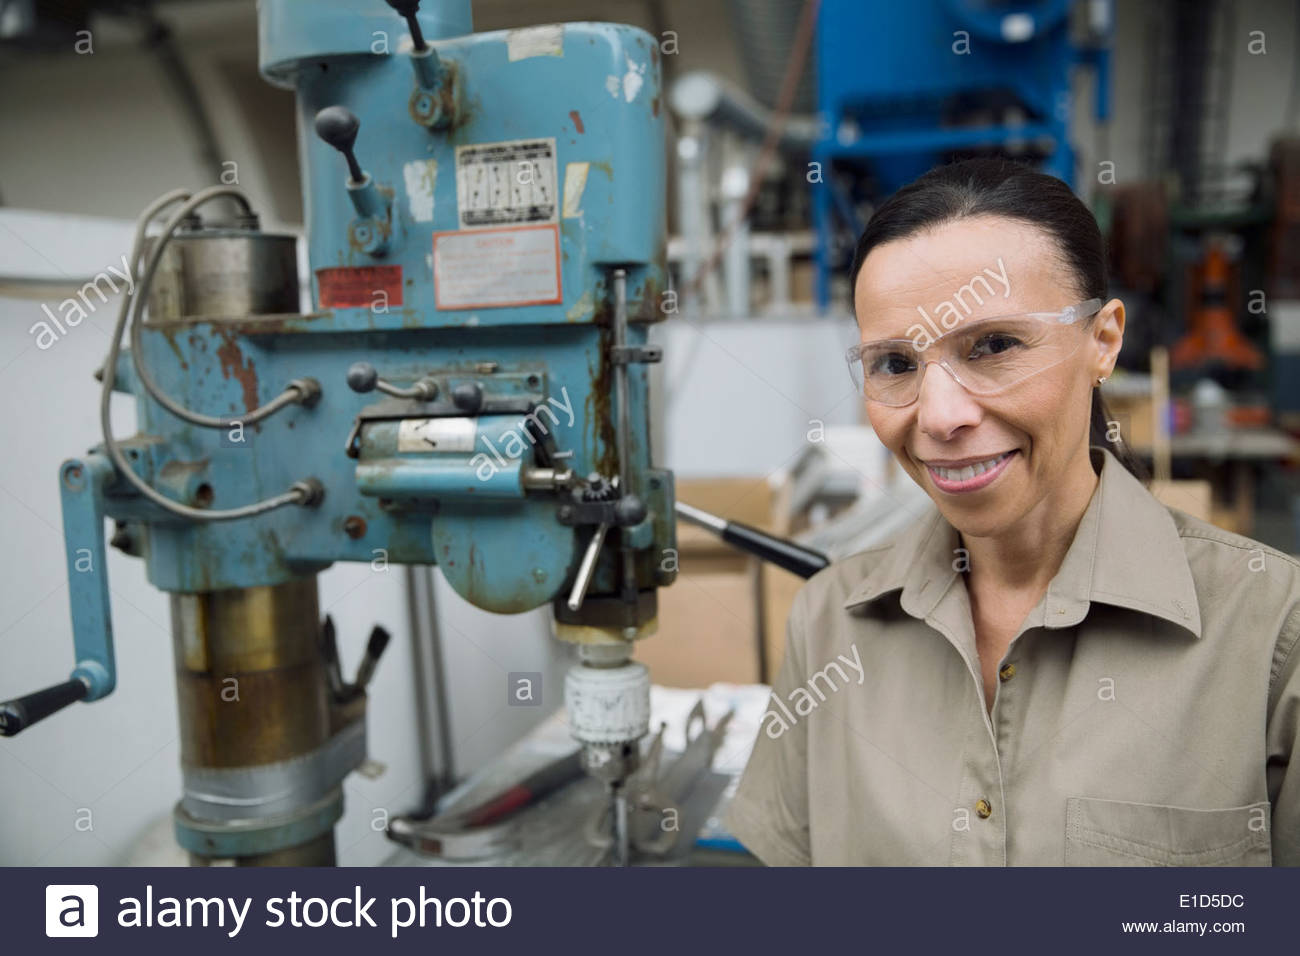 Smiling worker next to machinery in manufacturing plant - Stock Image